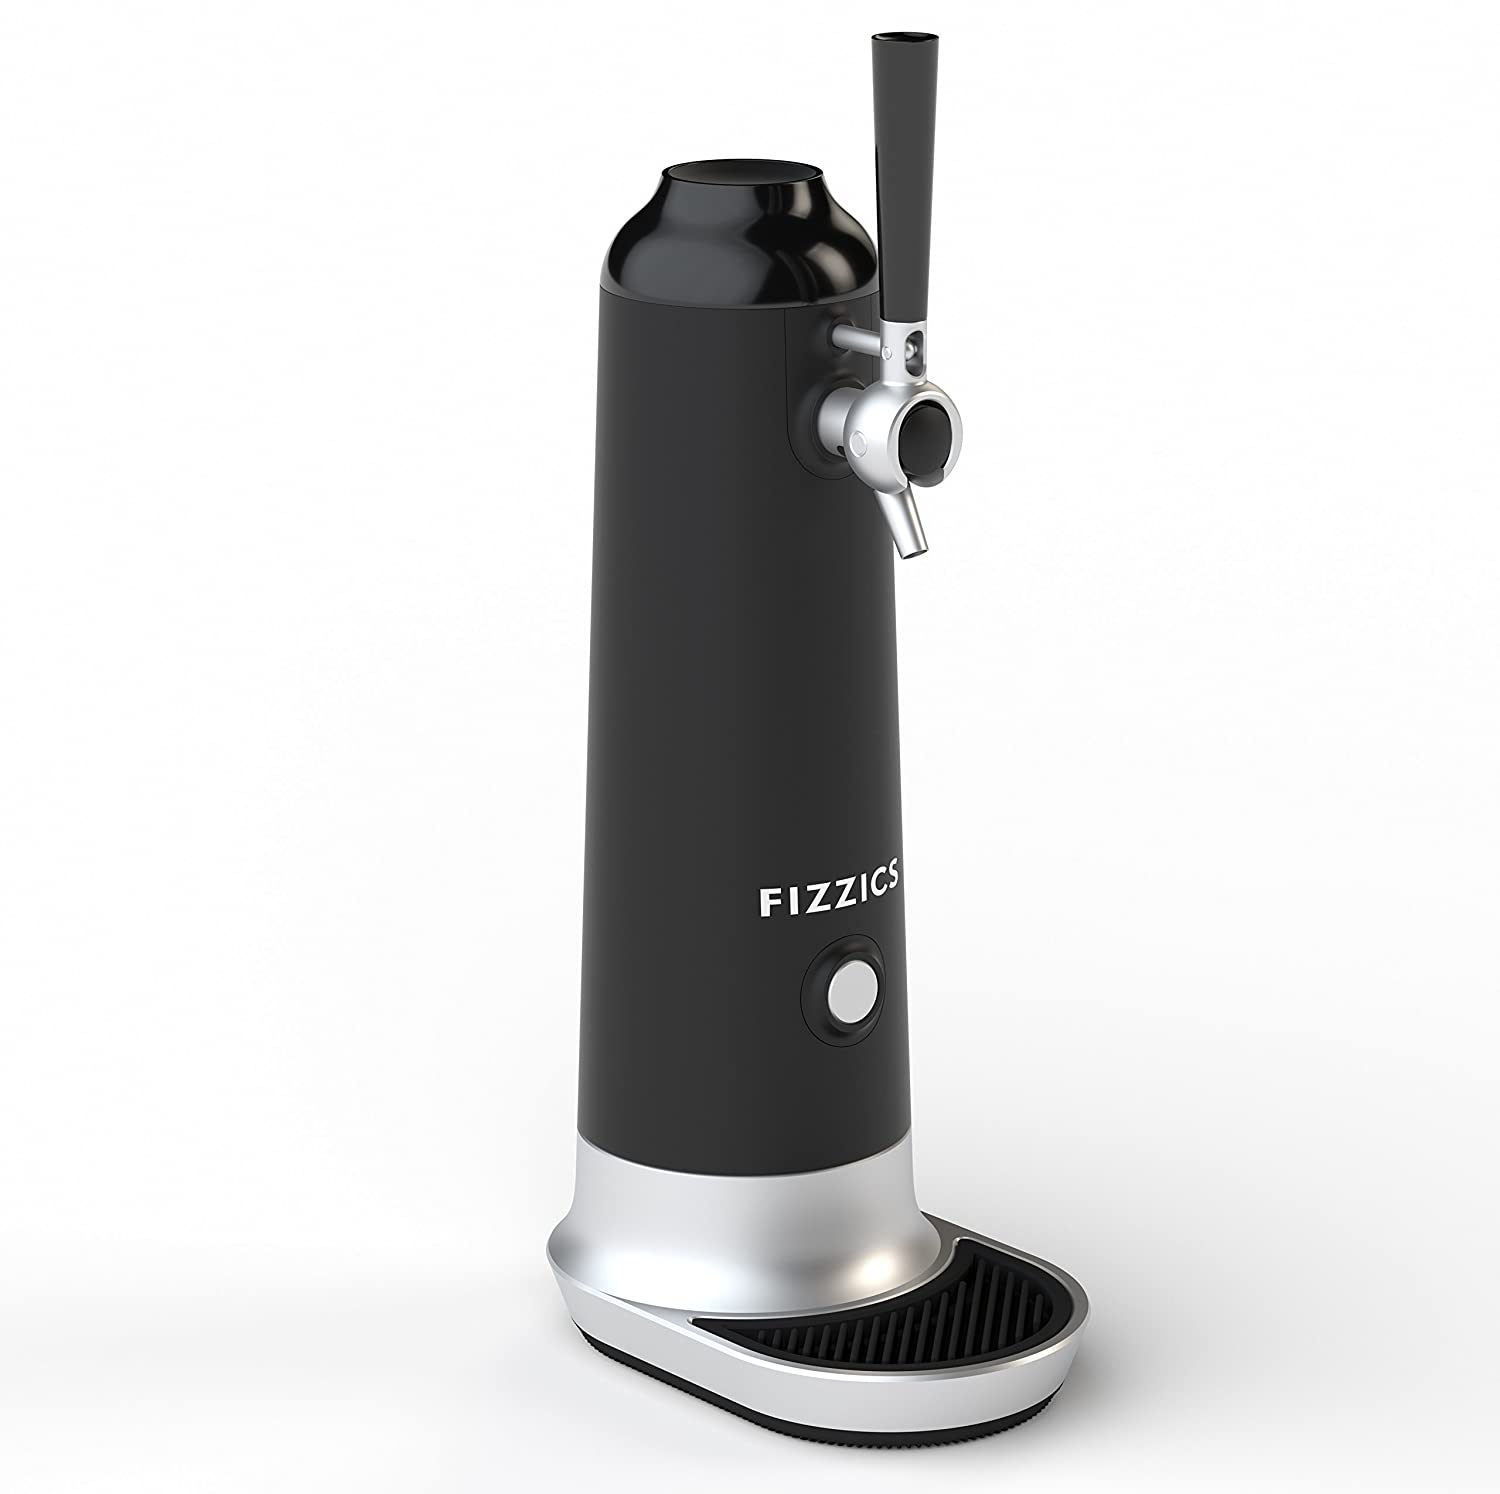 Fizzics Waytap Beer Dispenser, Black